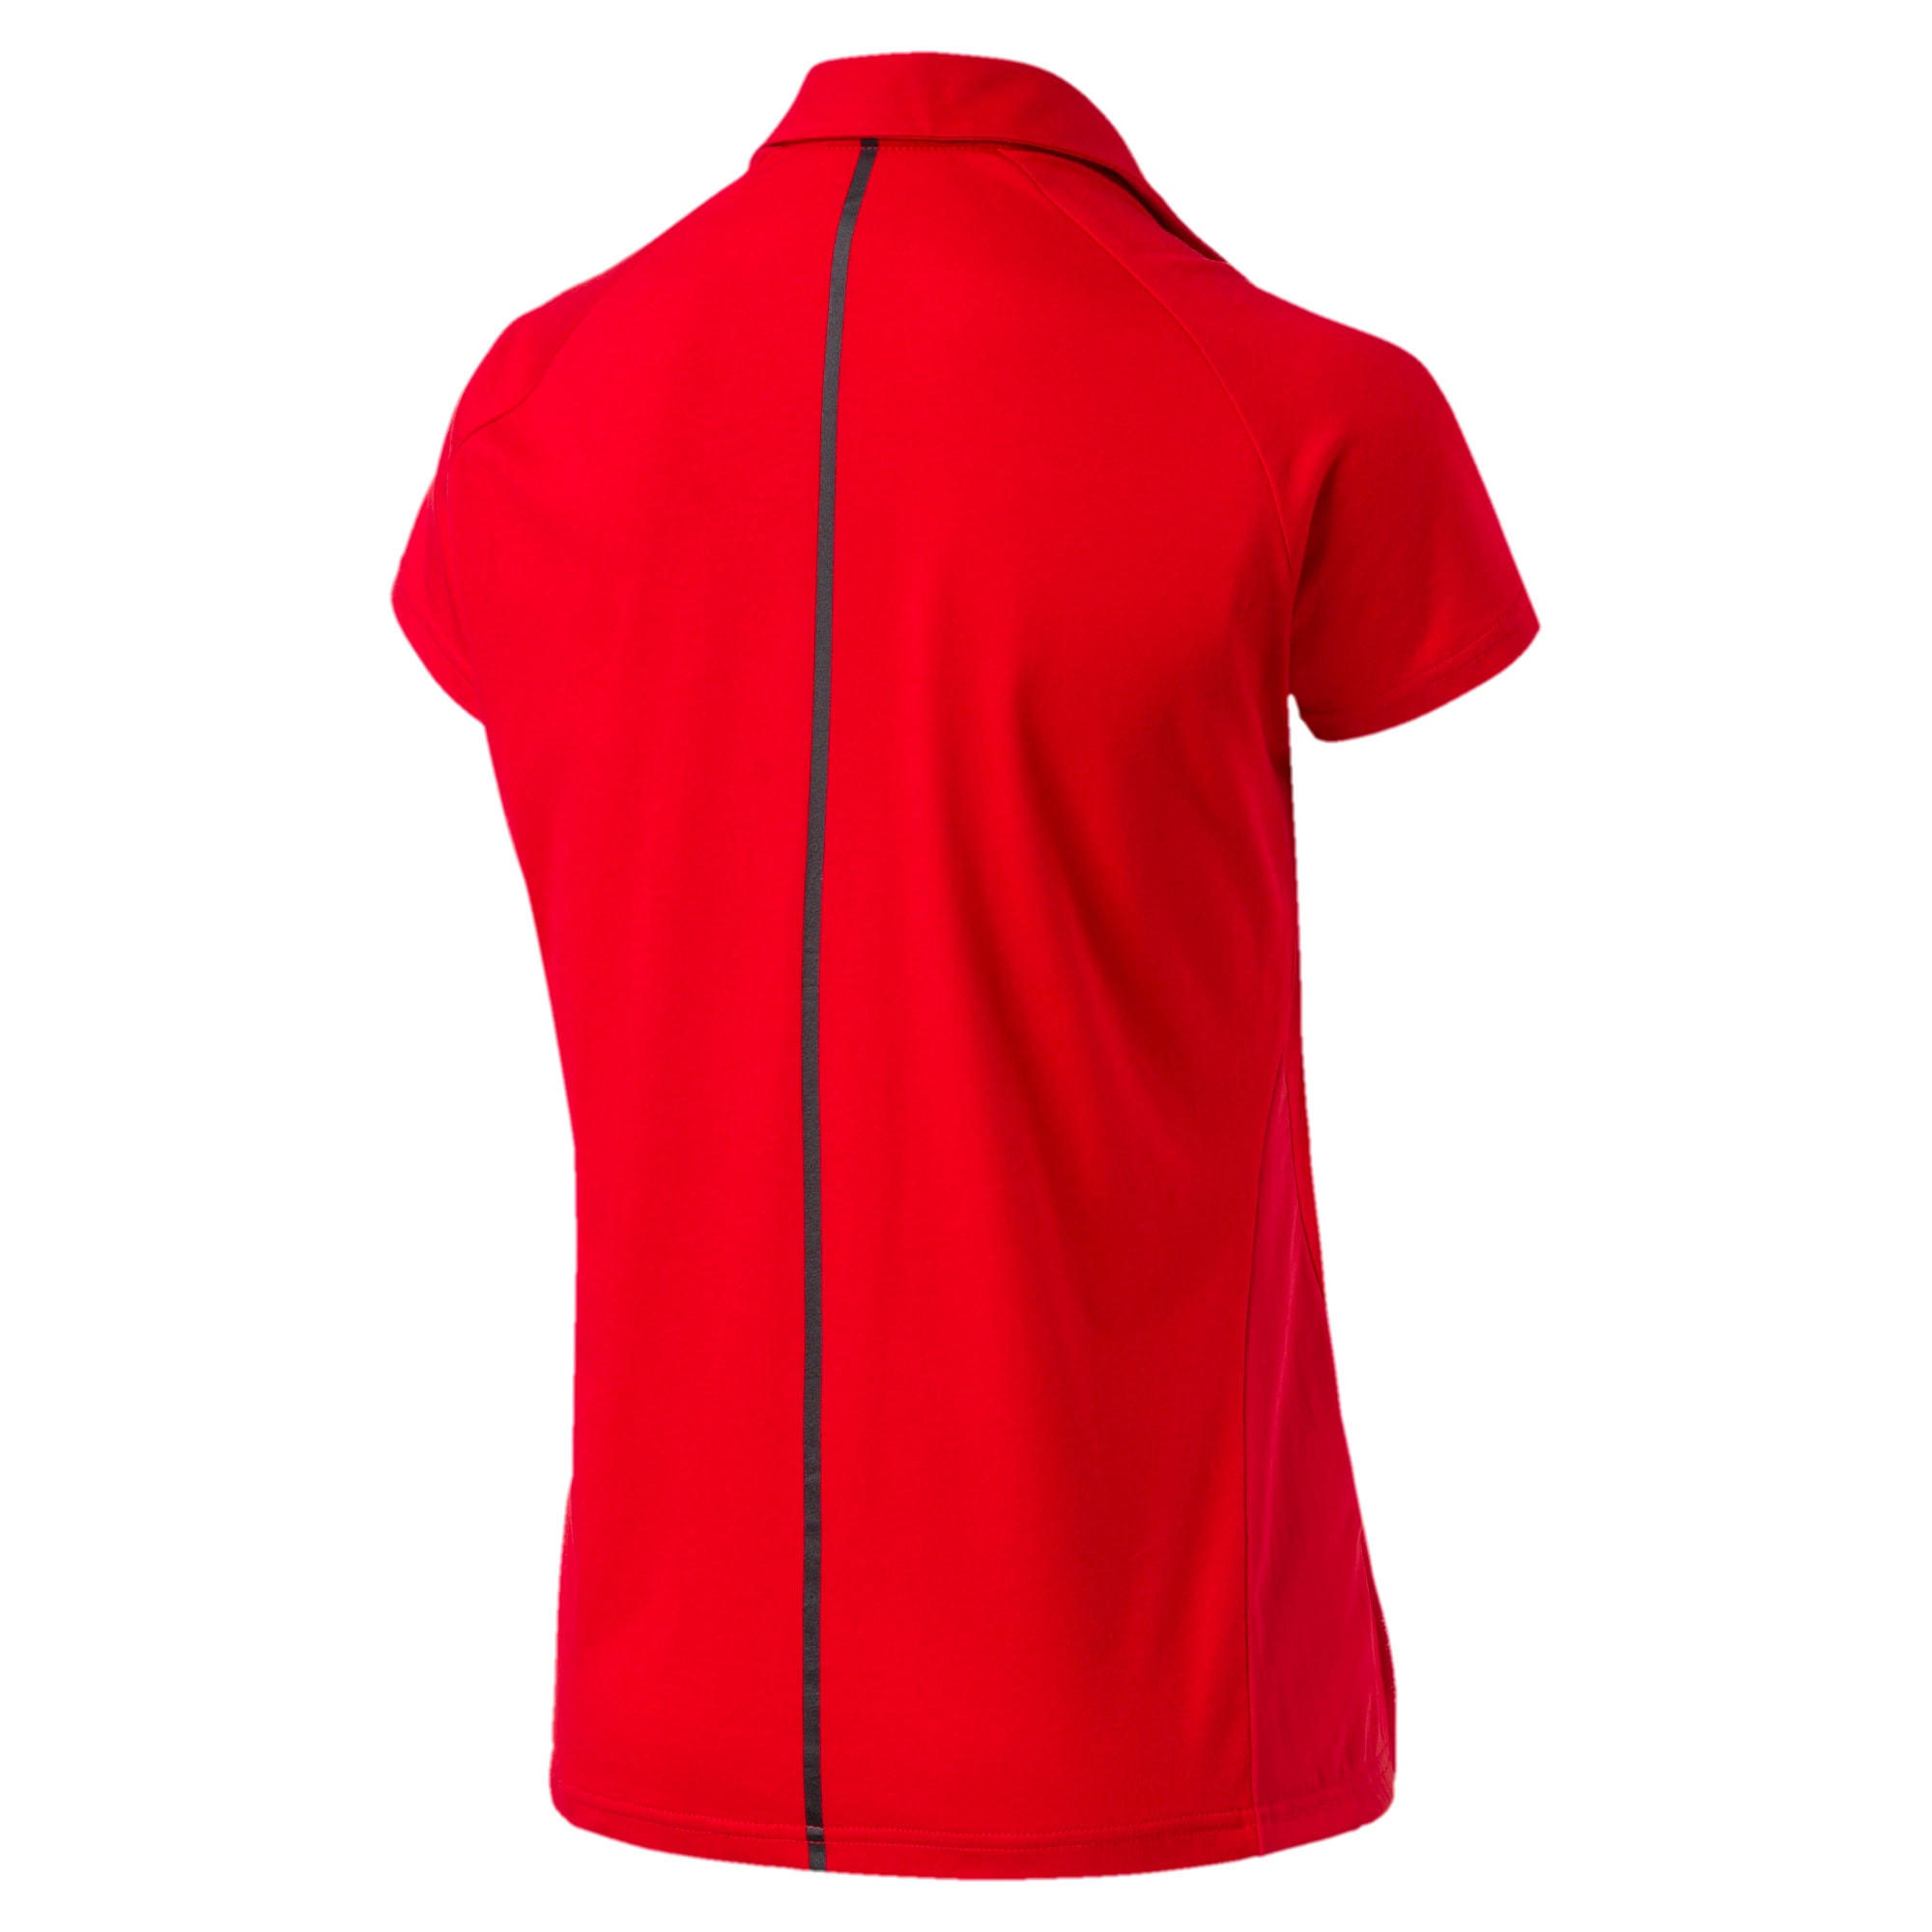 Thumbnail 3 of Ferrari Women's Polo, Rosso Corsa, medium-IND